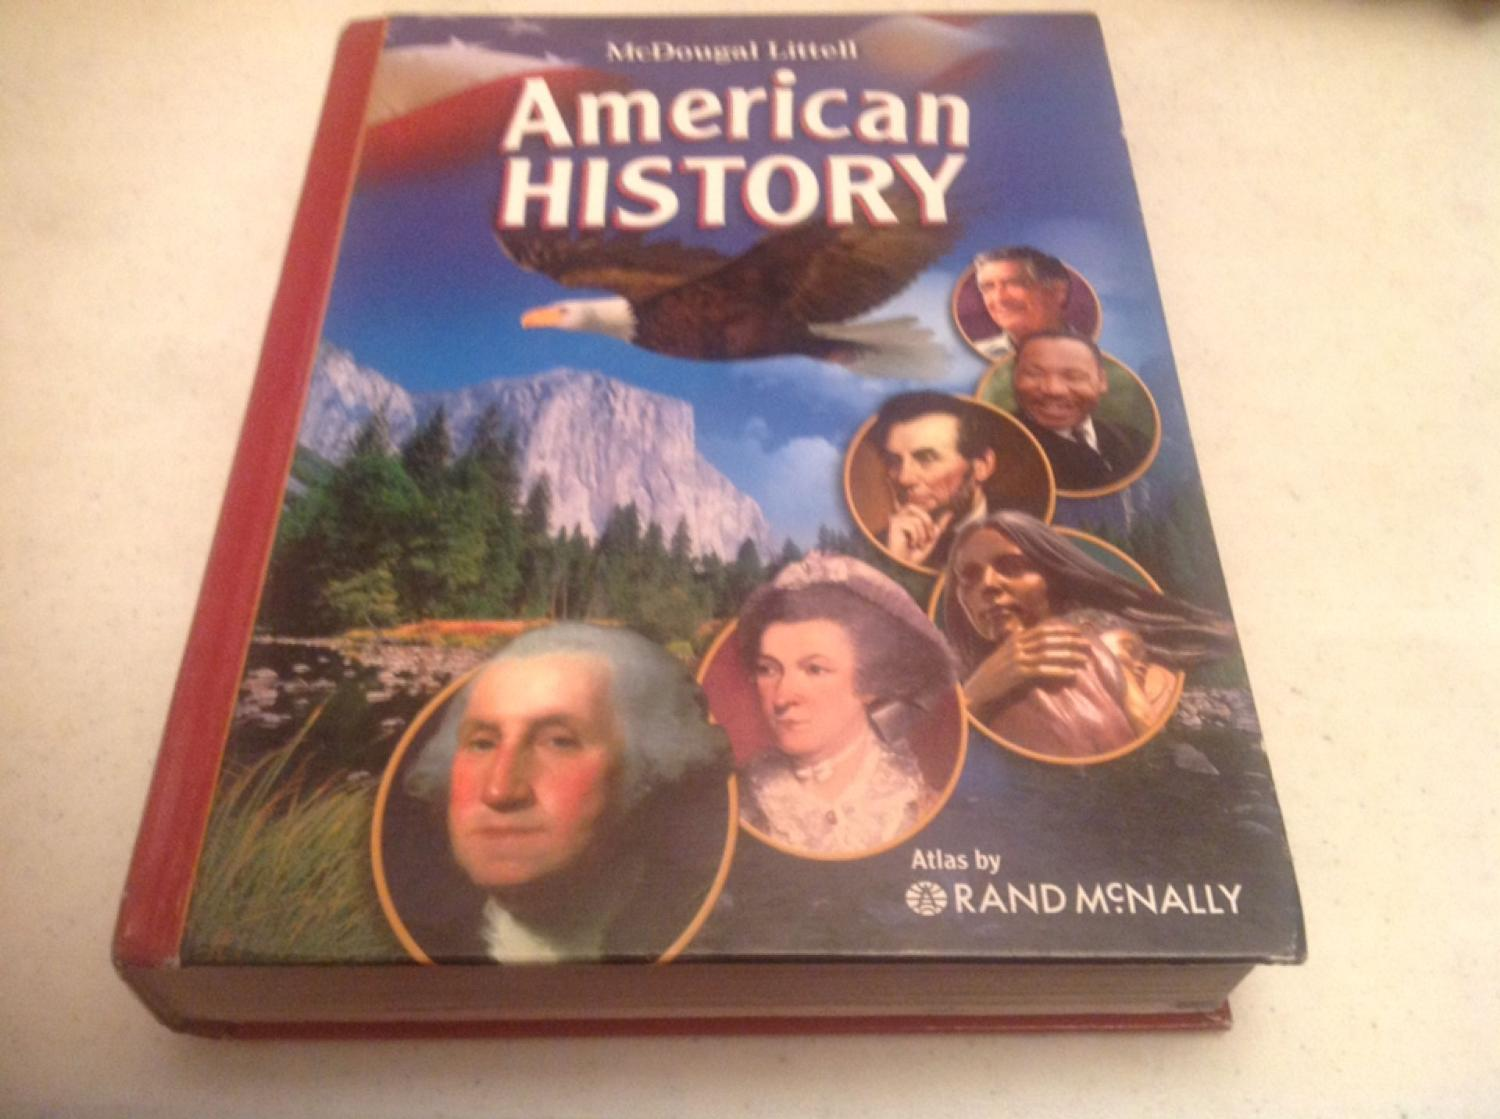 Middle school American history book from McDougal Littell  Covers time  period from 1650 to the present  Hard cover in very good condition